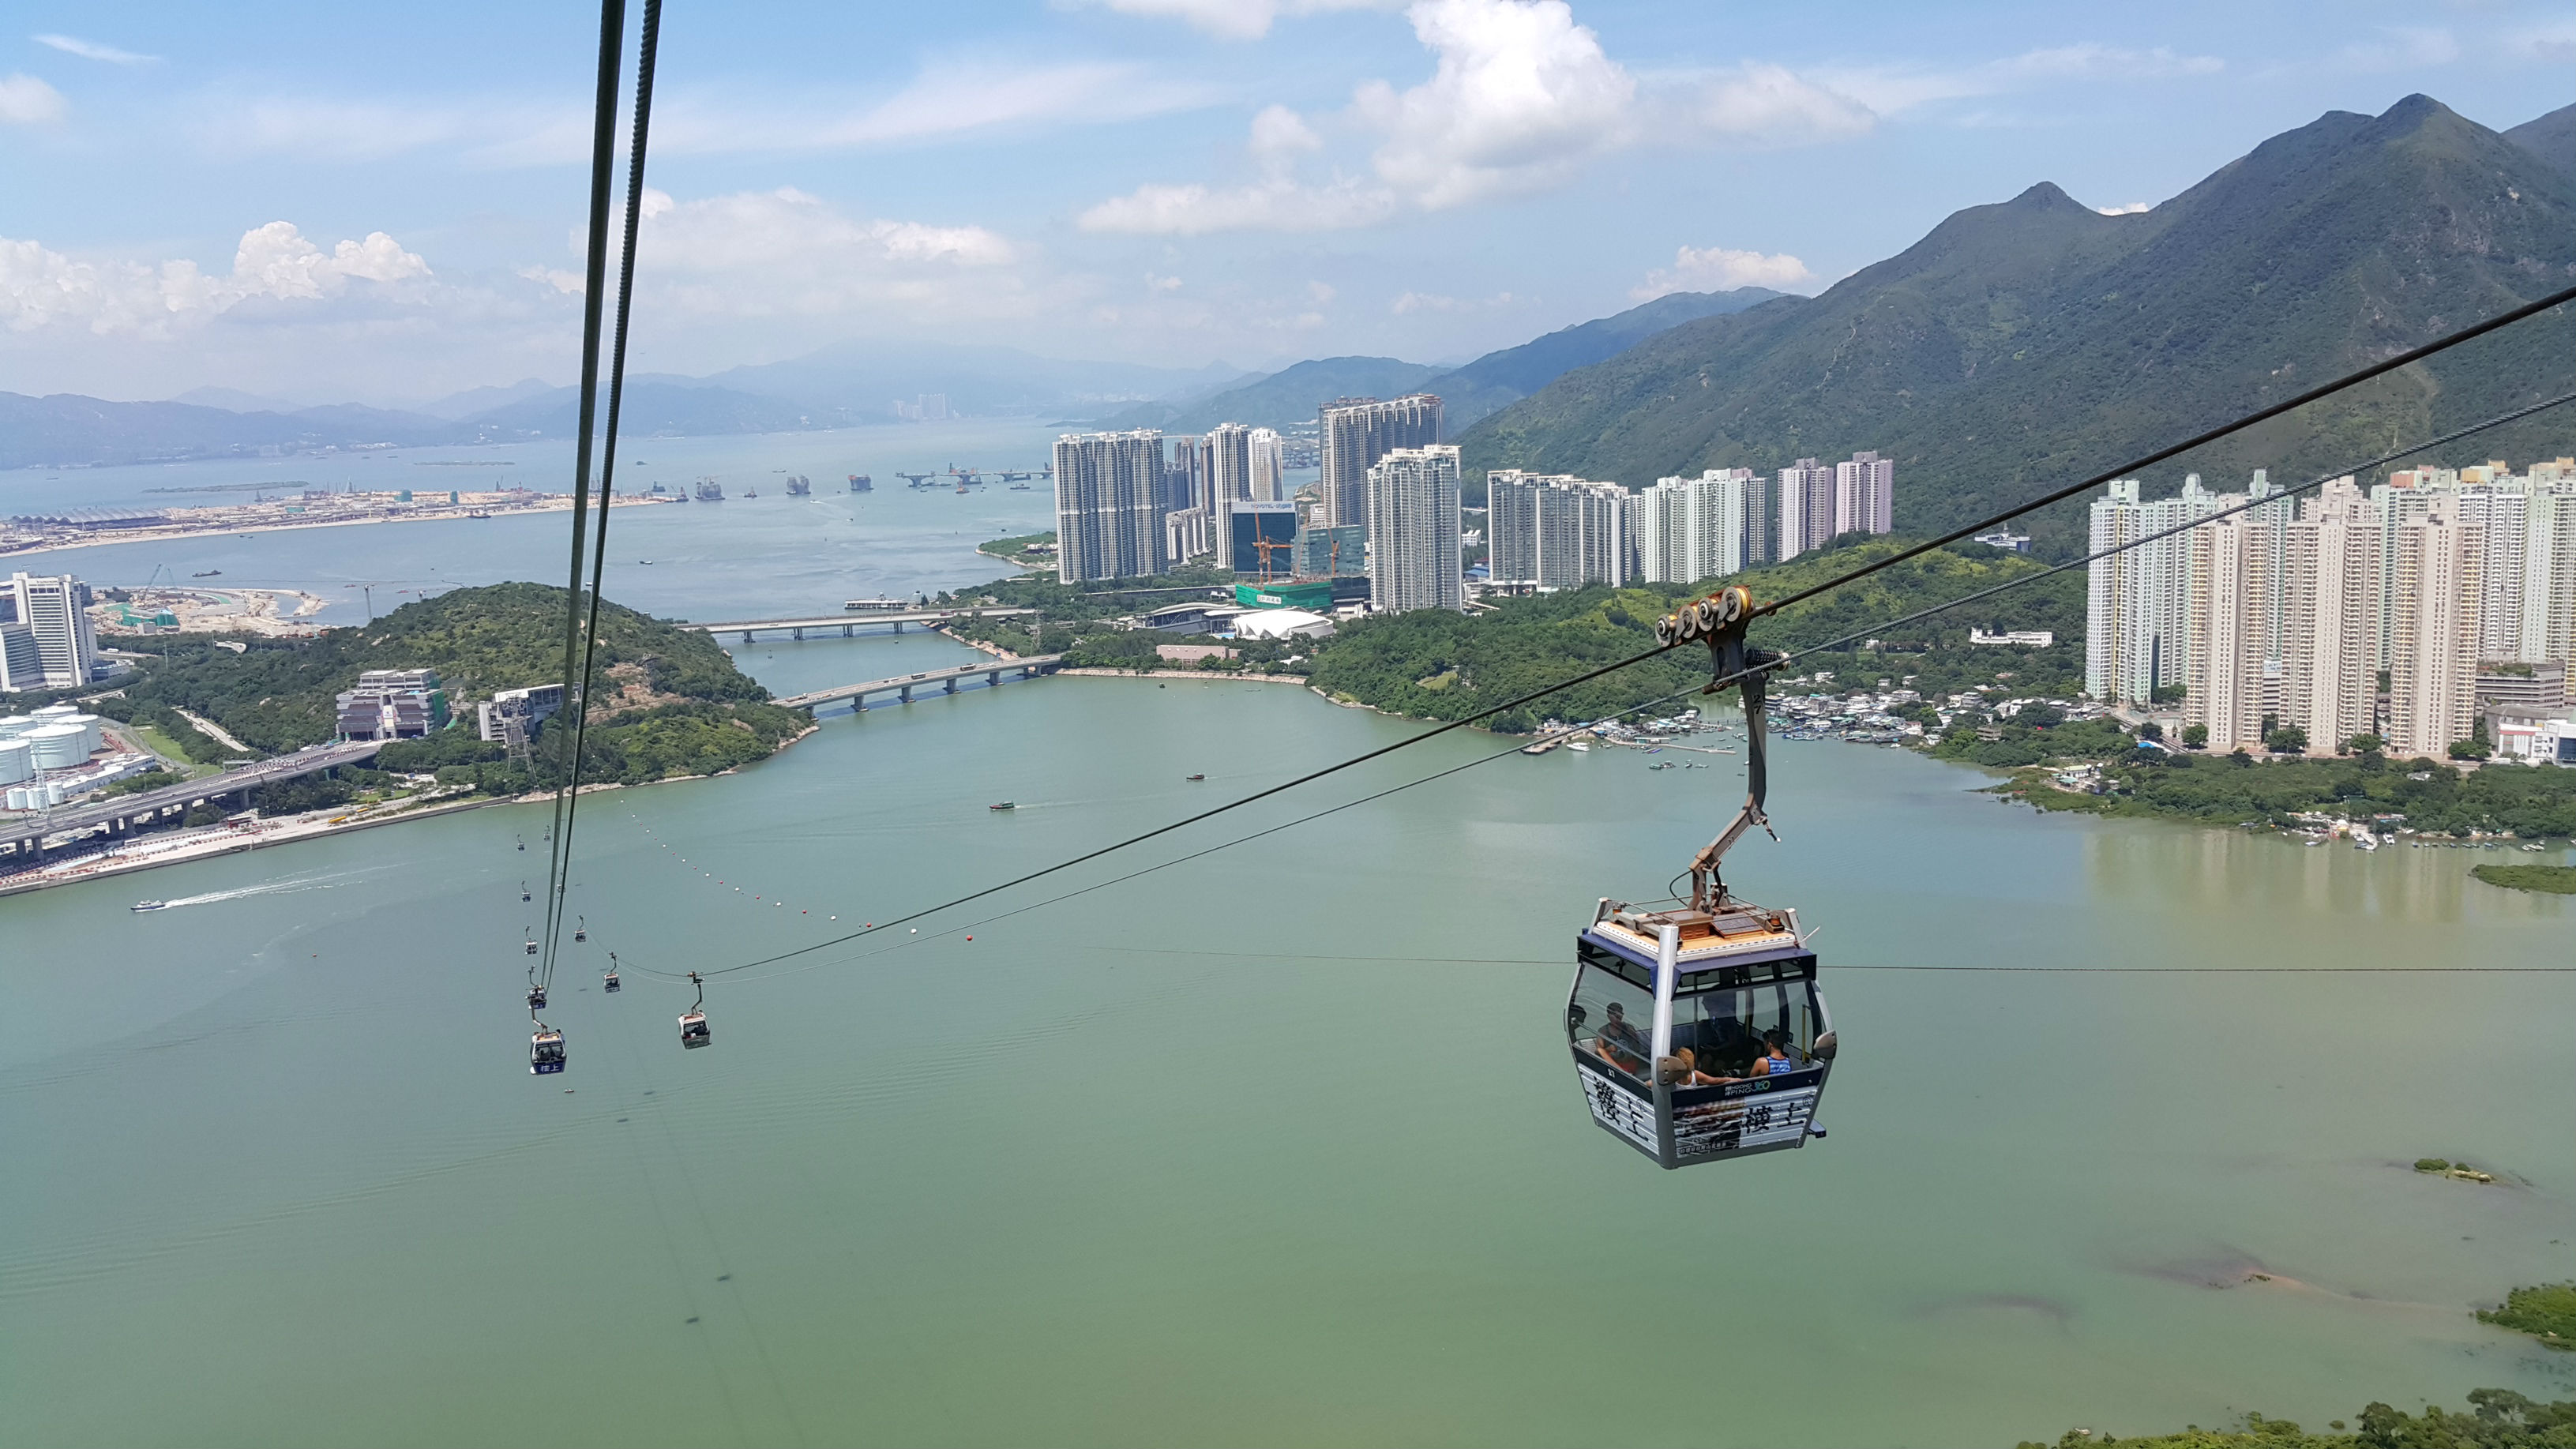 The best way to reach the main village of Ngong Ping, near the statue, is by taking the cable car, known as Ngong Ping 360. (Photo \ Chris Lynch)